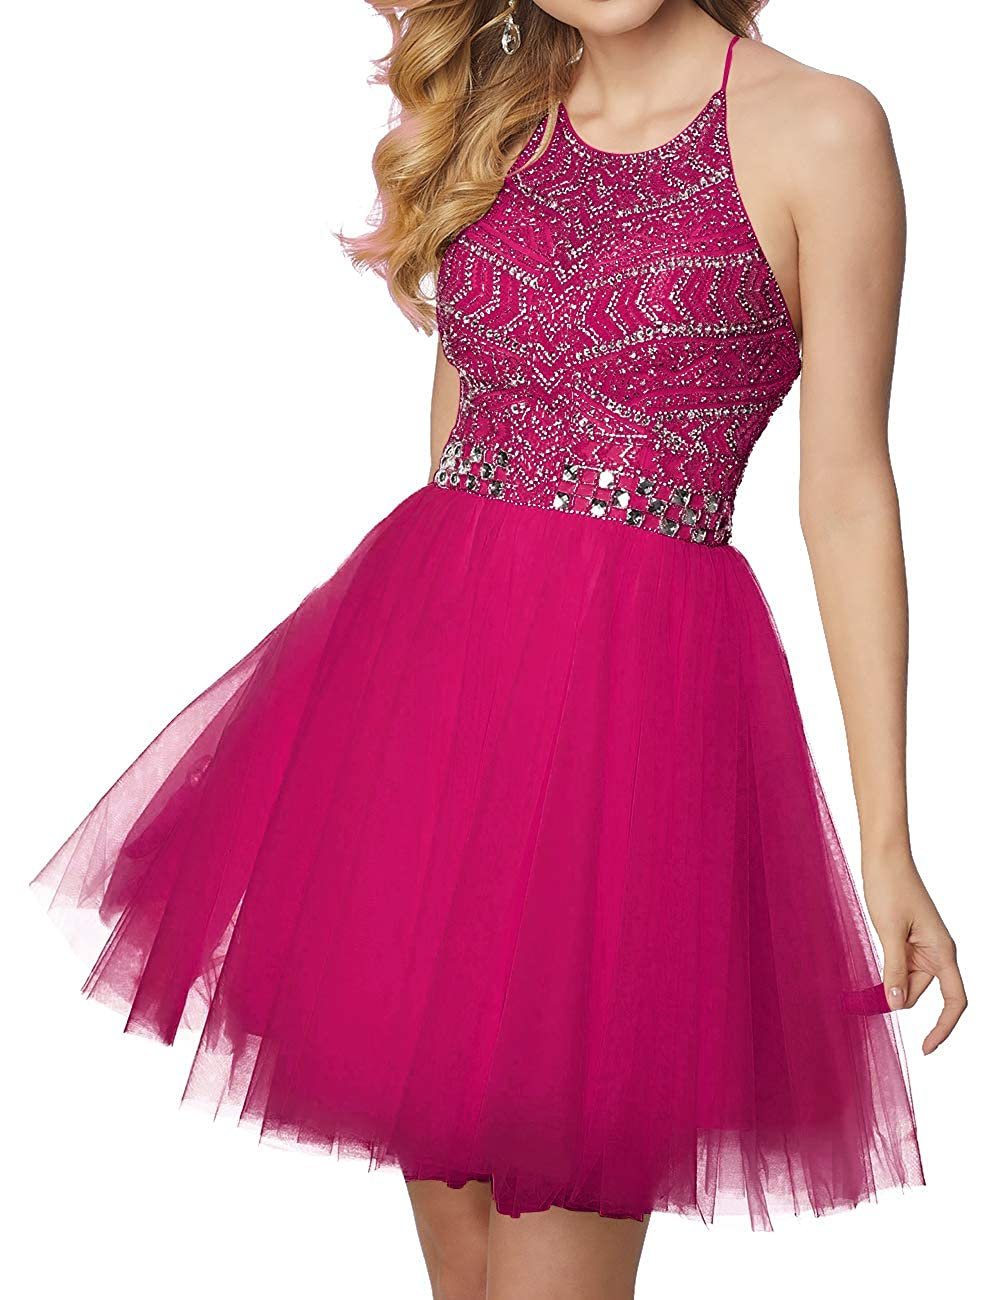 Fuchsia Short Homecoming Dresses Tulle Halter Cocktail Prom Gowns Beads Formal Evening Party Dress